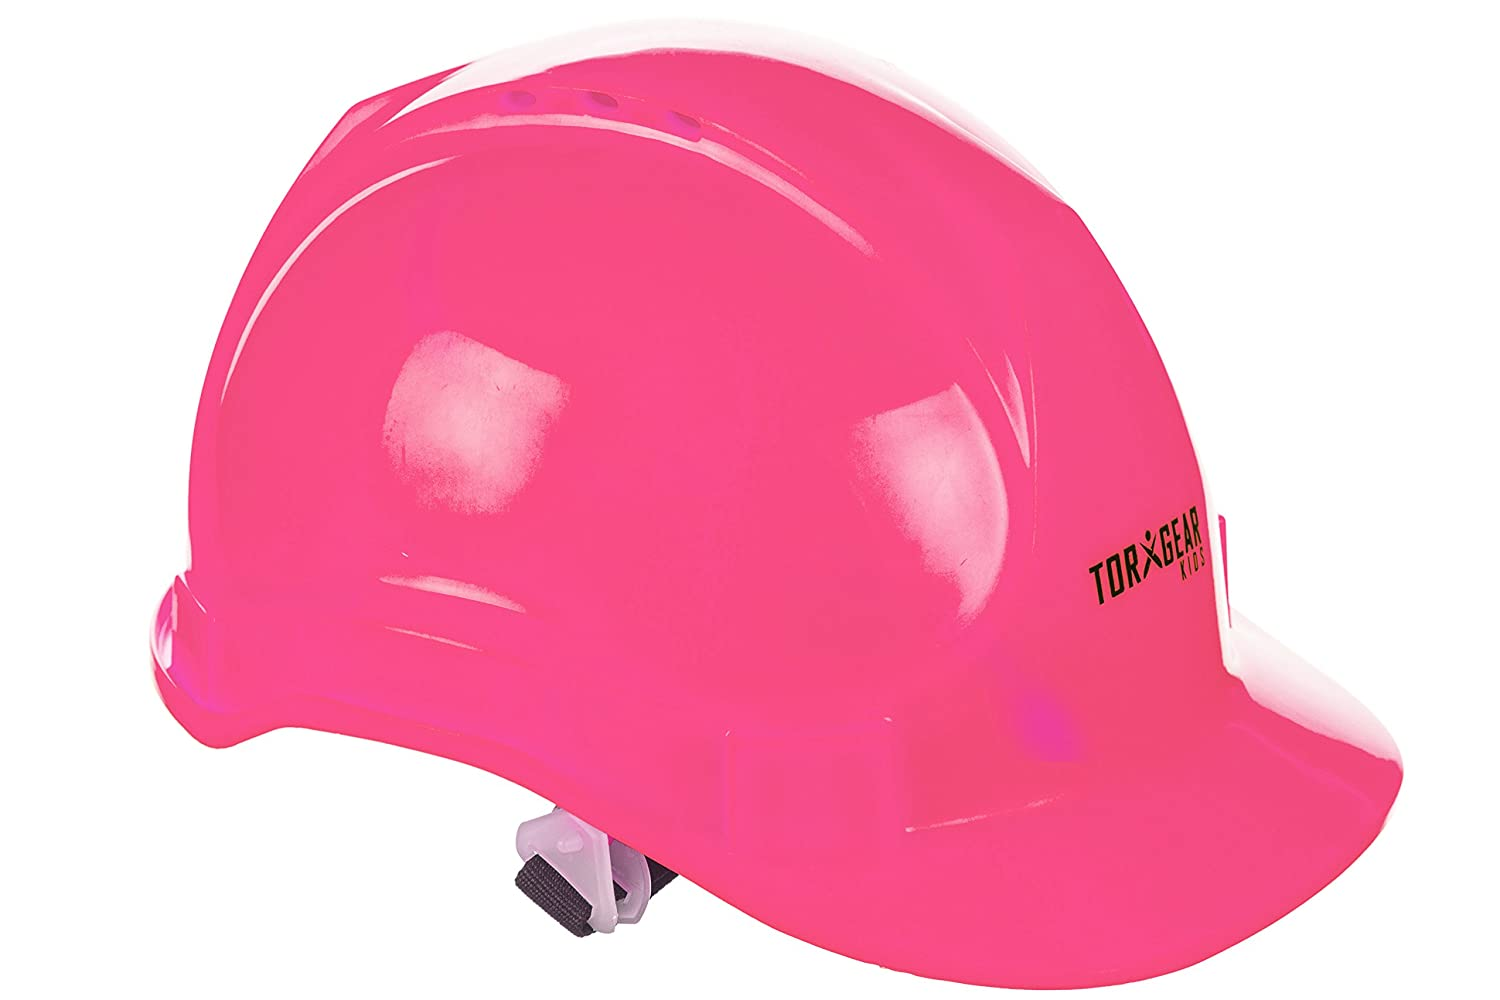 Kids Safety Construction Helmet or Costume Child/'s Pink Hard Hat Ages 2 to 6